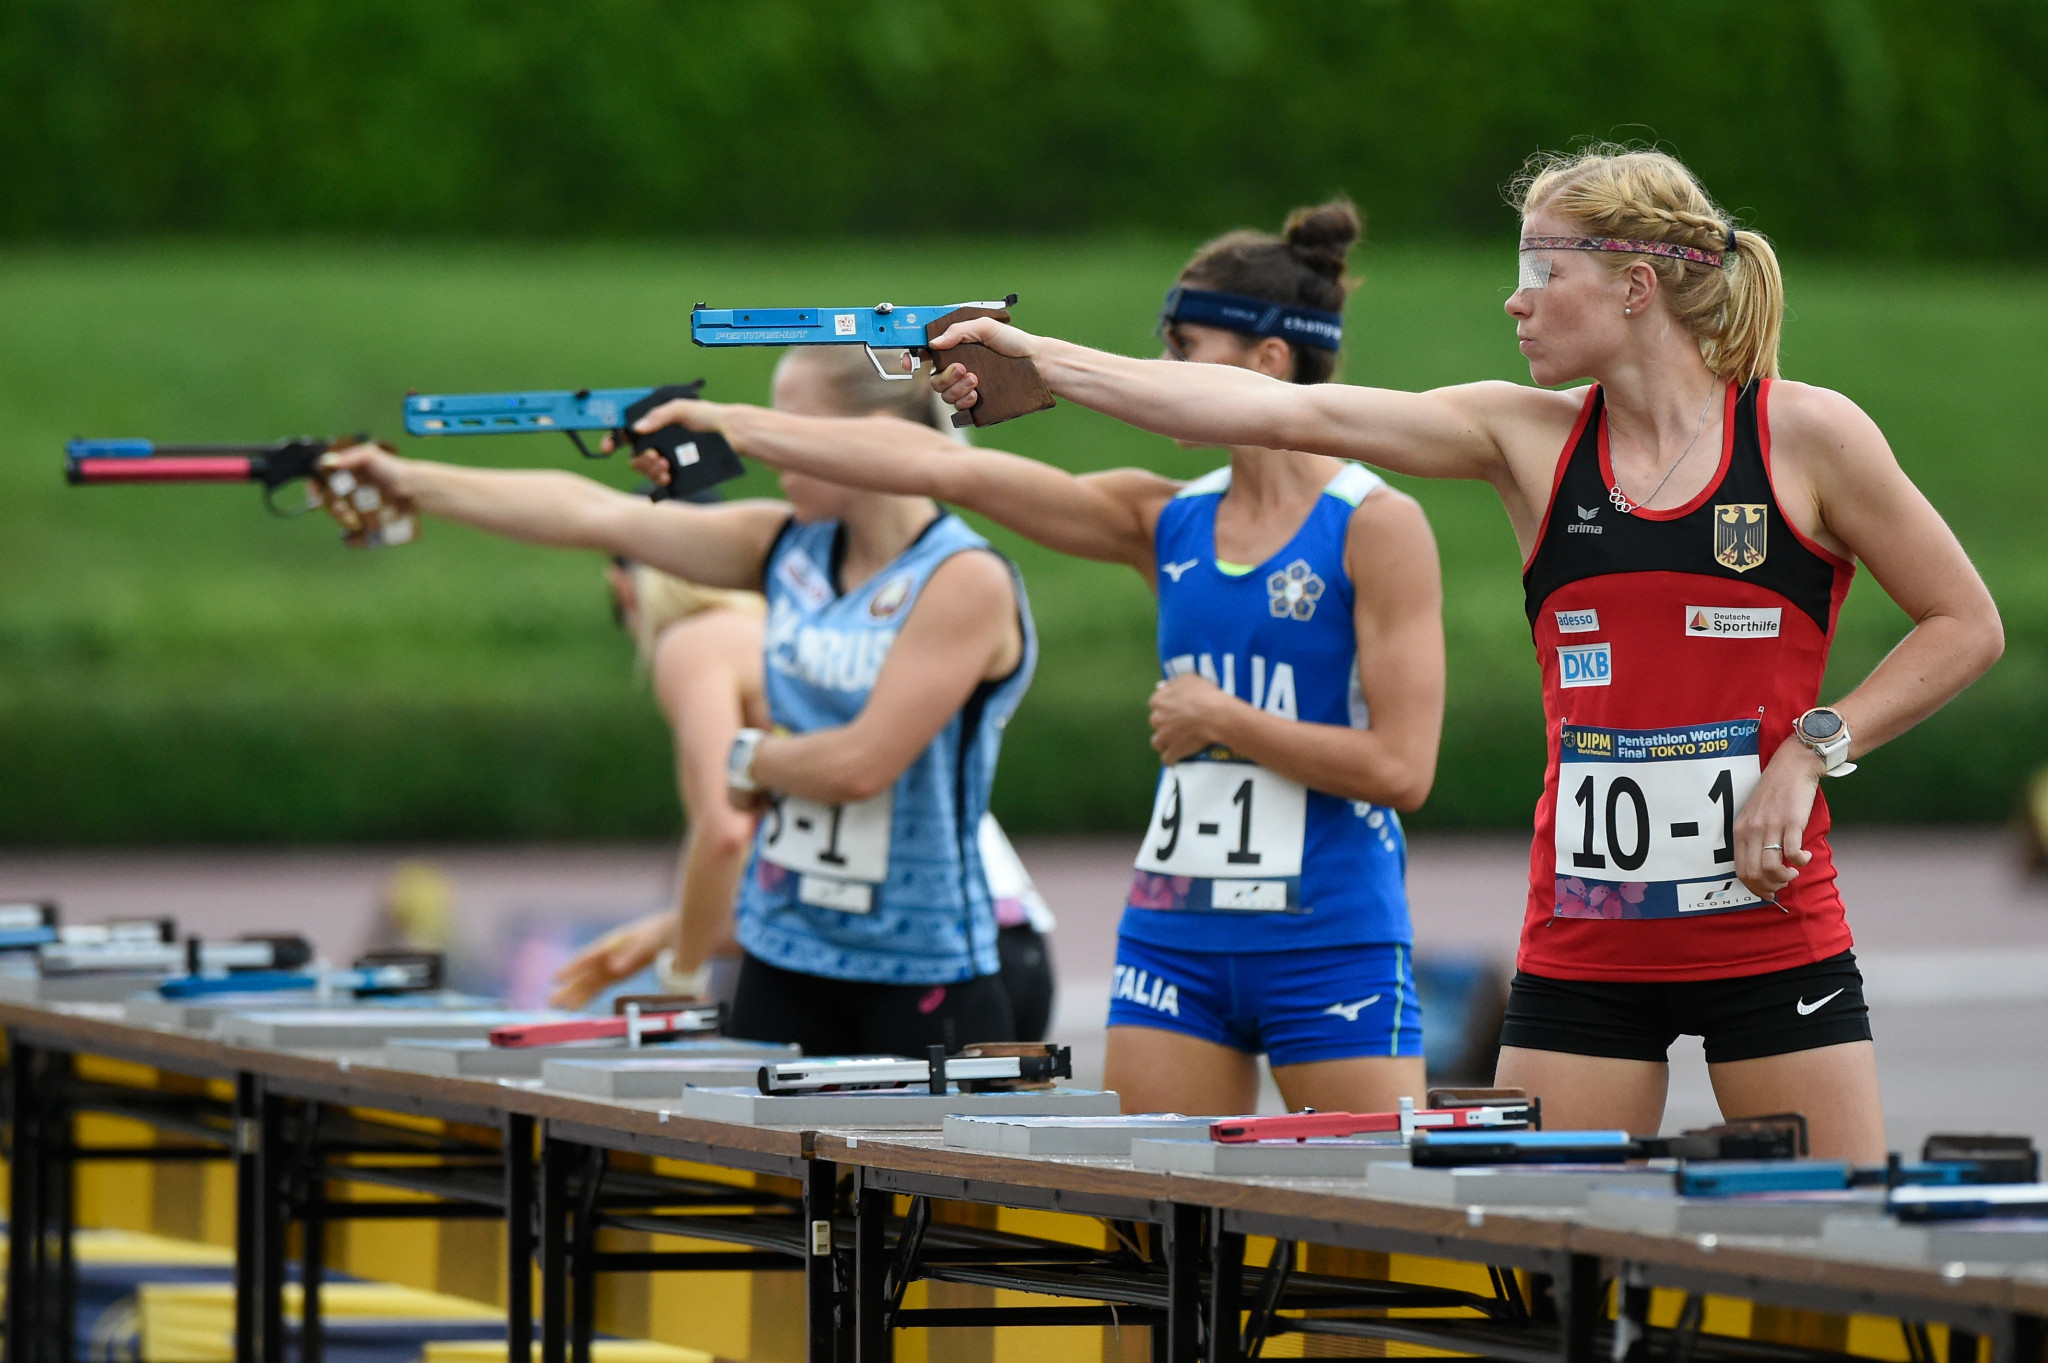 Ten nations take home gold medals in UIPM 2021 Biathle-Triathle World Championships